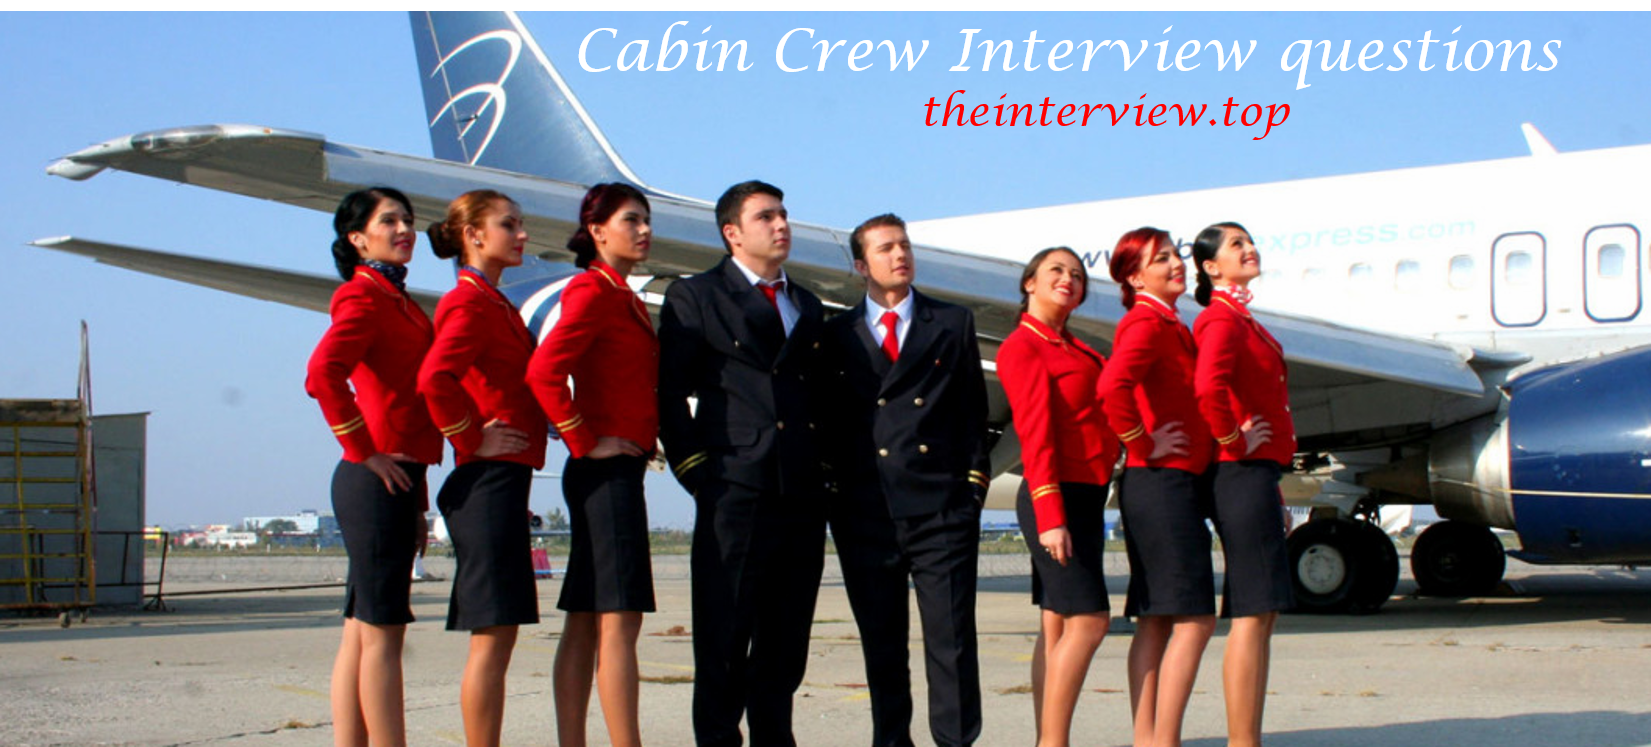 cabin crew interview questions and answers interview questions